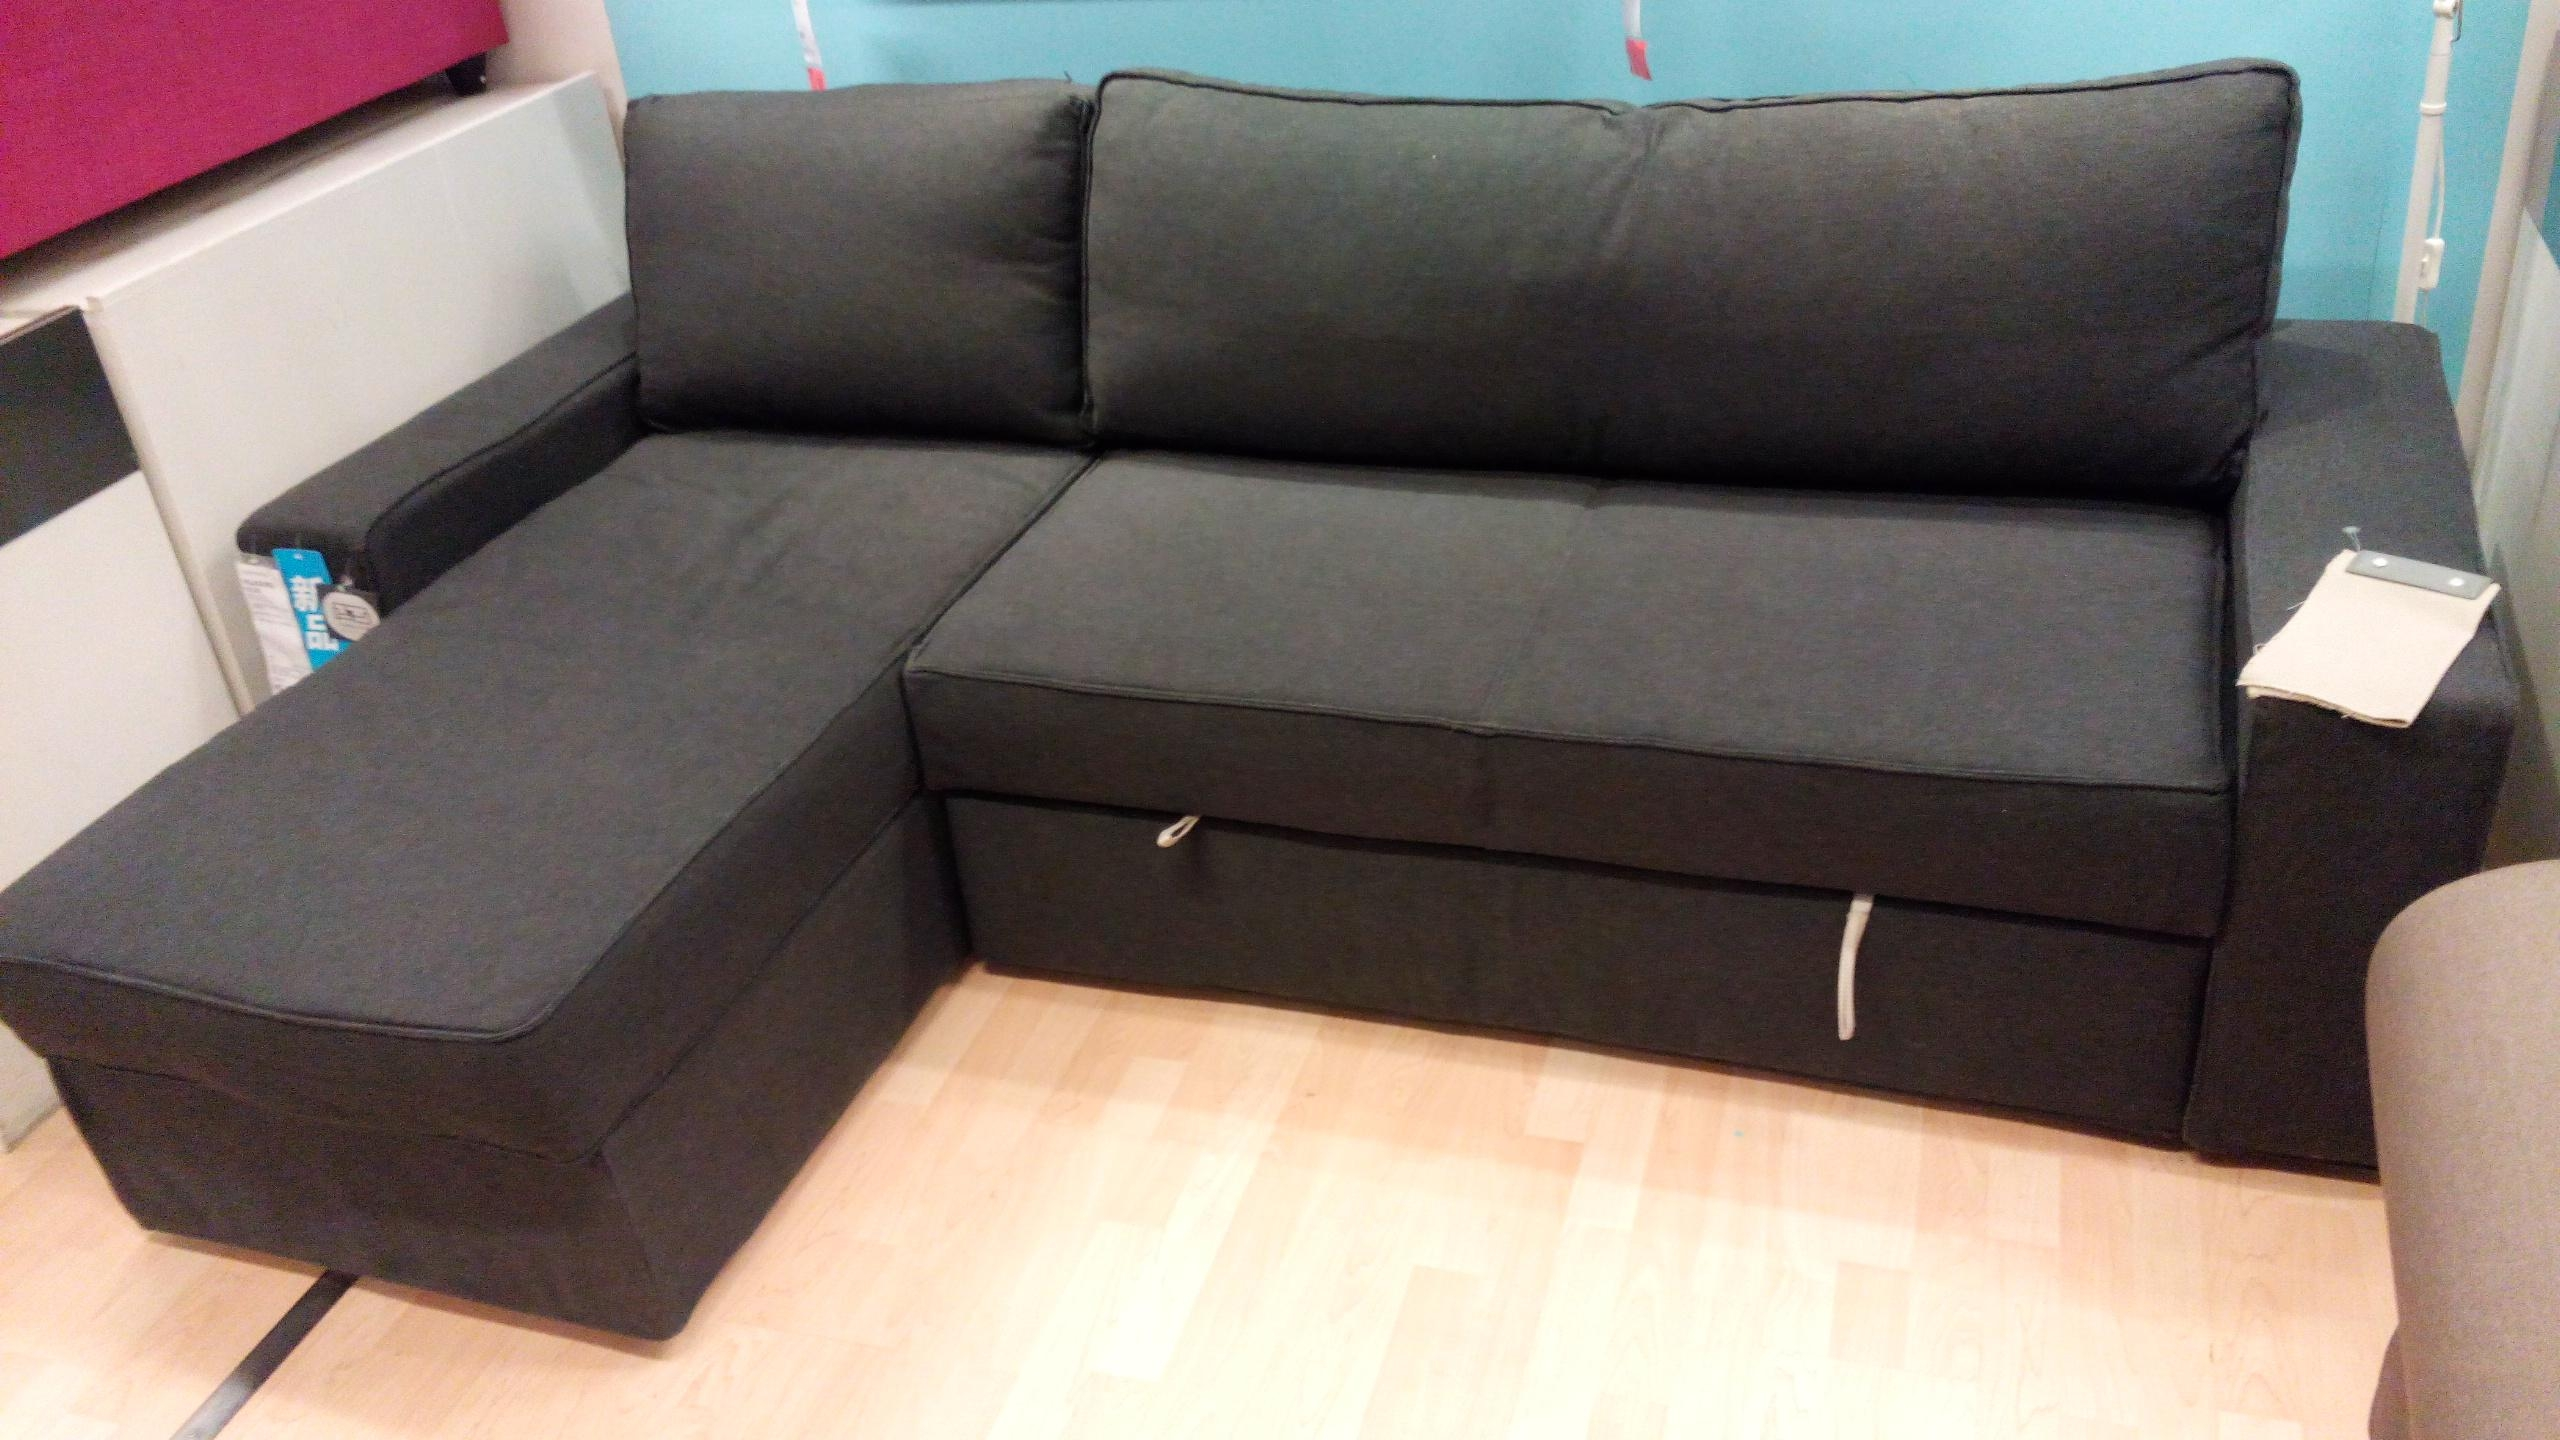 Ikea Vilasund And Backabro Review – Return Of The Sofa Bed Clones! Regarding Manstad Sofa Bed (View 8 of 20)